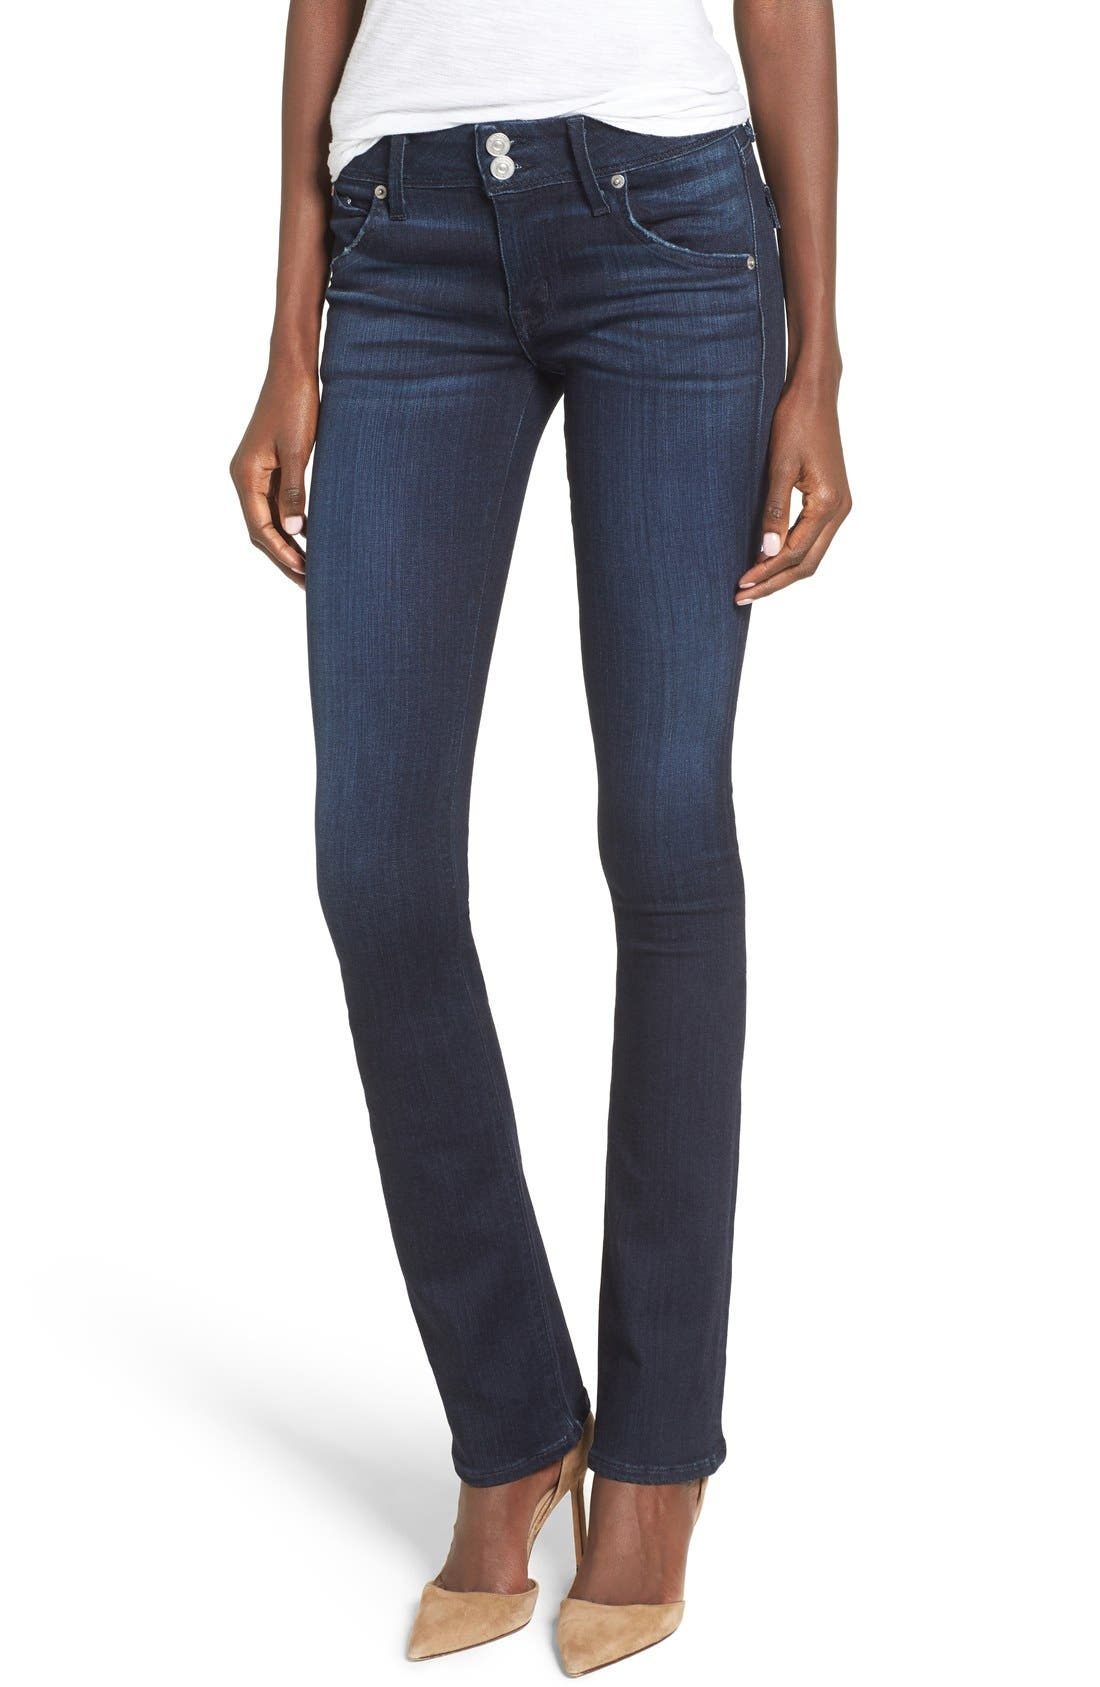 Alternate Image 1 Selected - Hudson Jeans 'Beth' Baby Bootcut Jeans